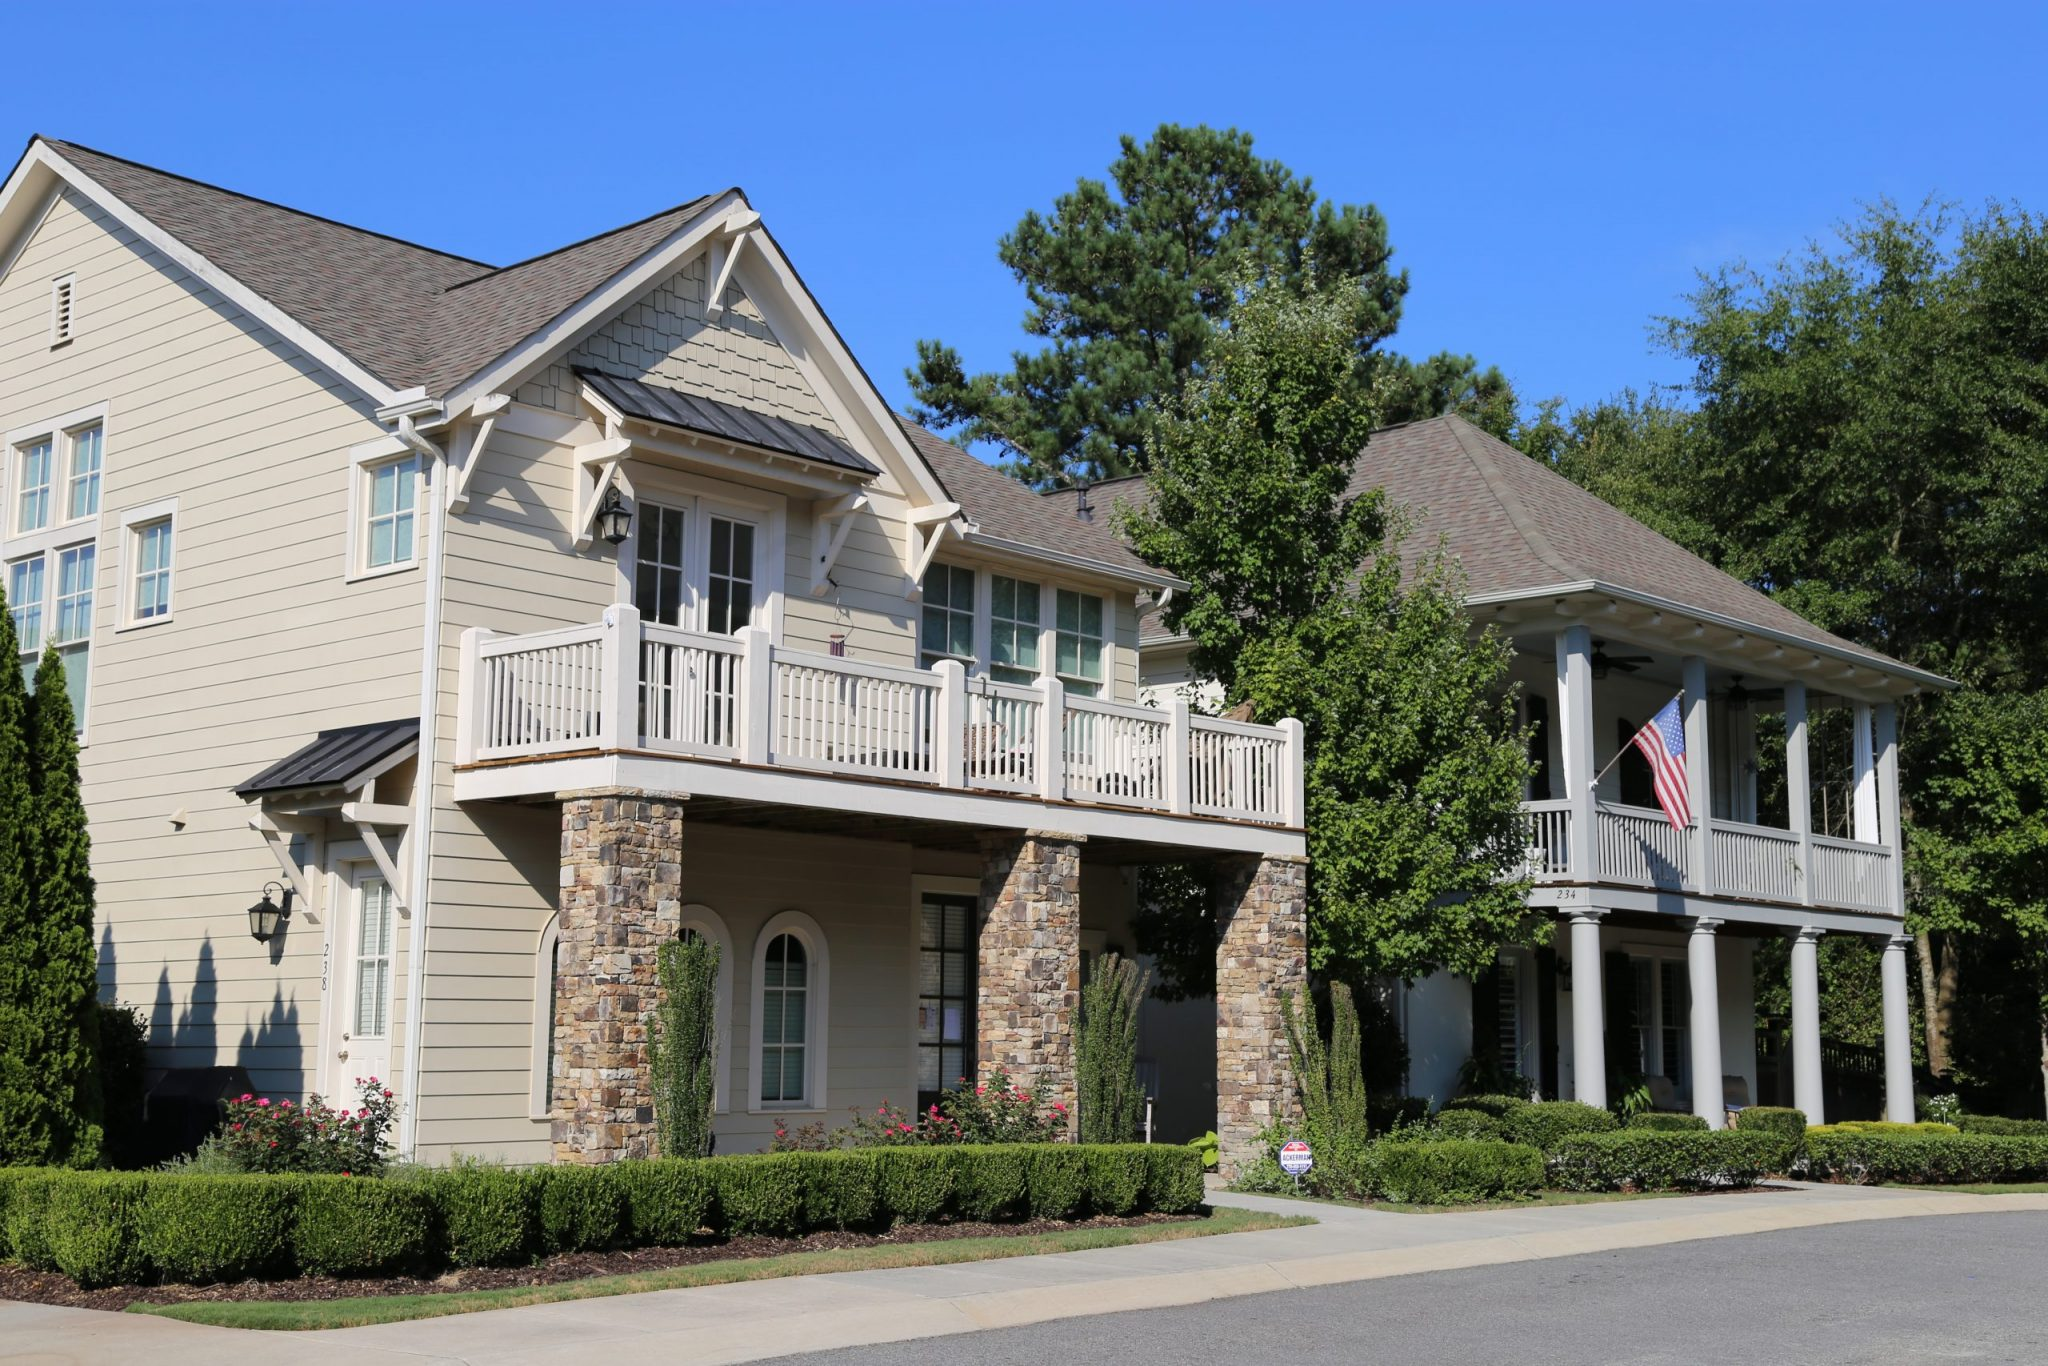 Single-family residential housing in Woodstock, GA